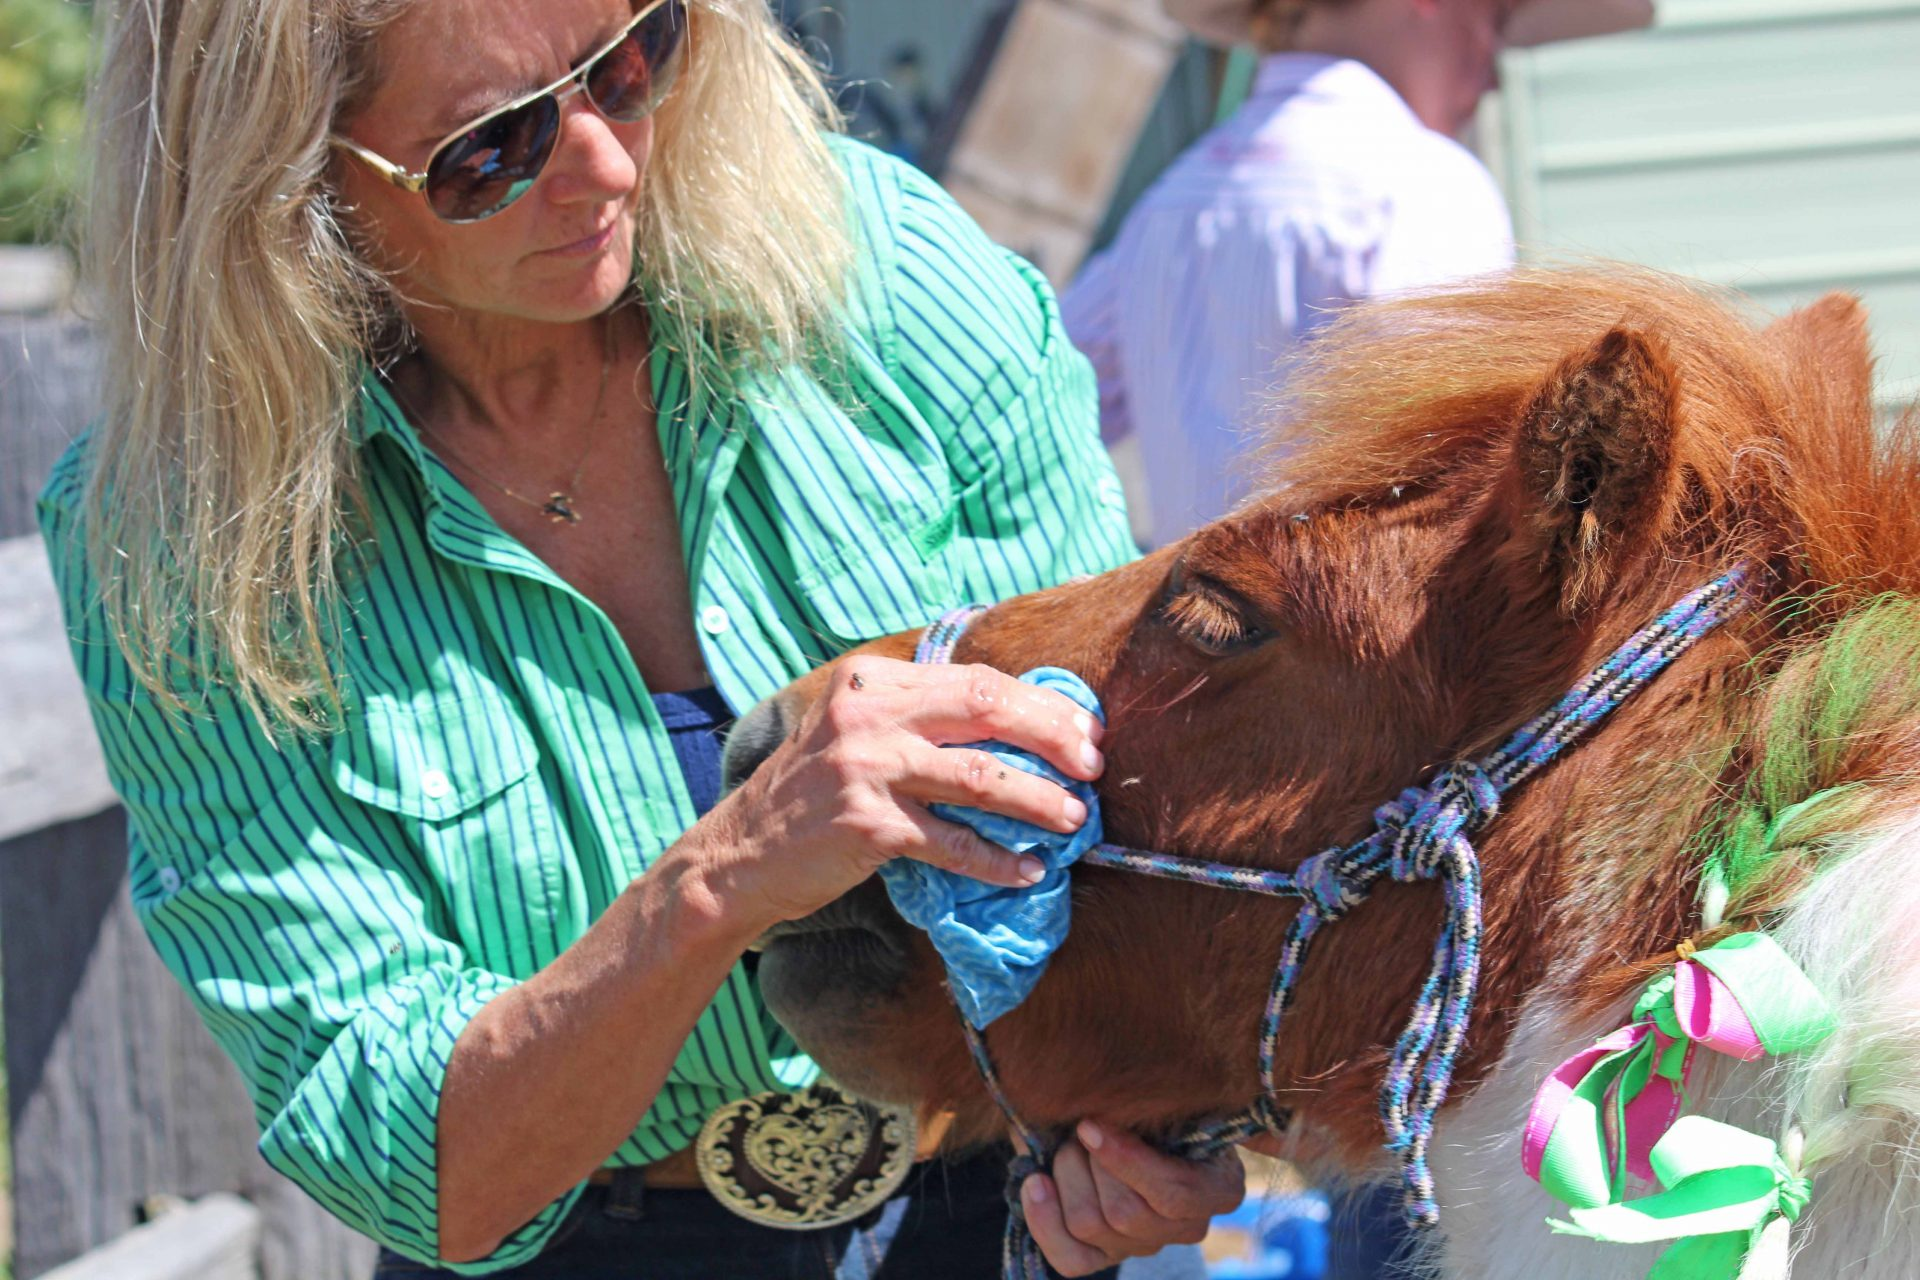 Woman Wiping Pony's Face